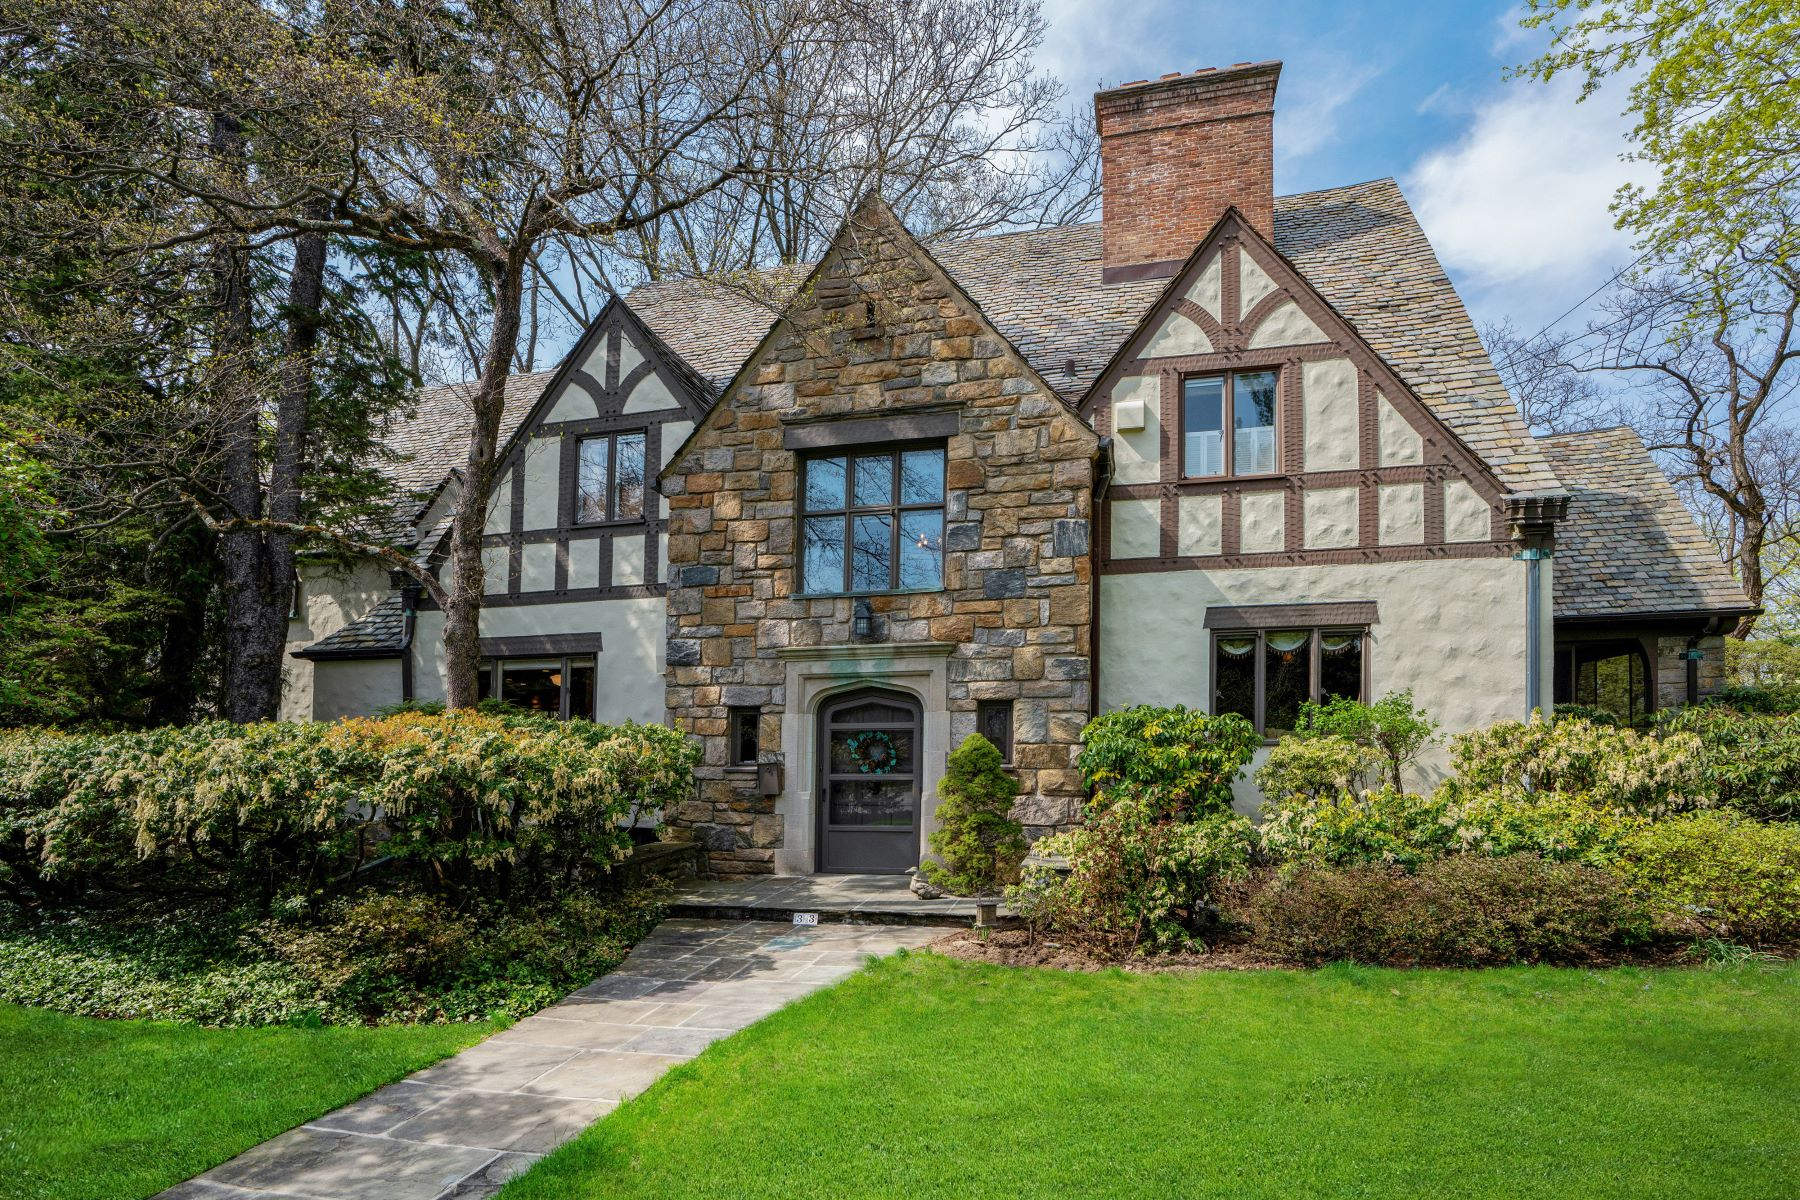 Single Family Homes for Sale at 33 Glen Eagles Drive Larchmont, New York 10538 United States